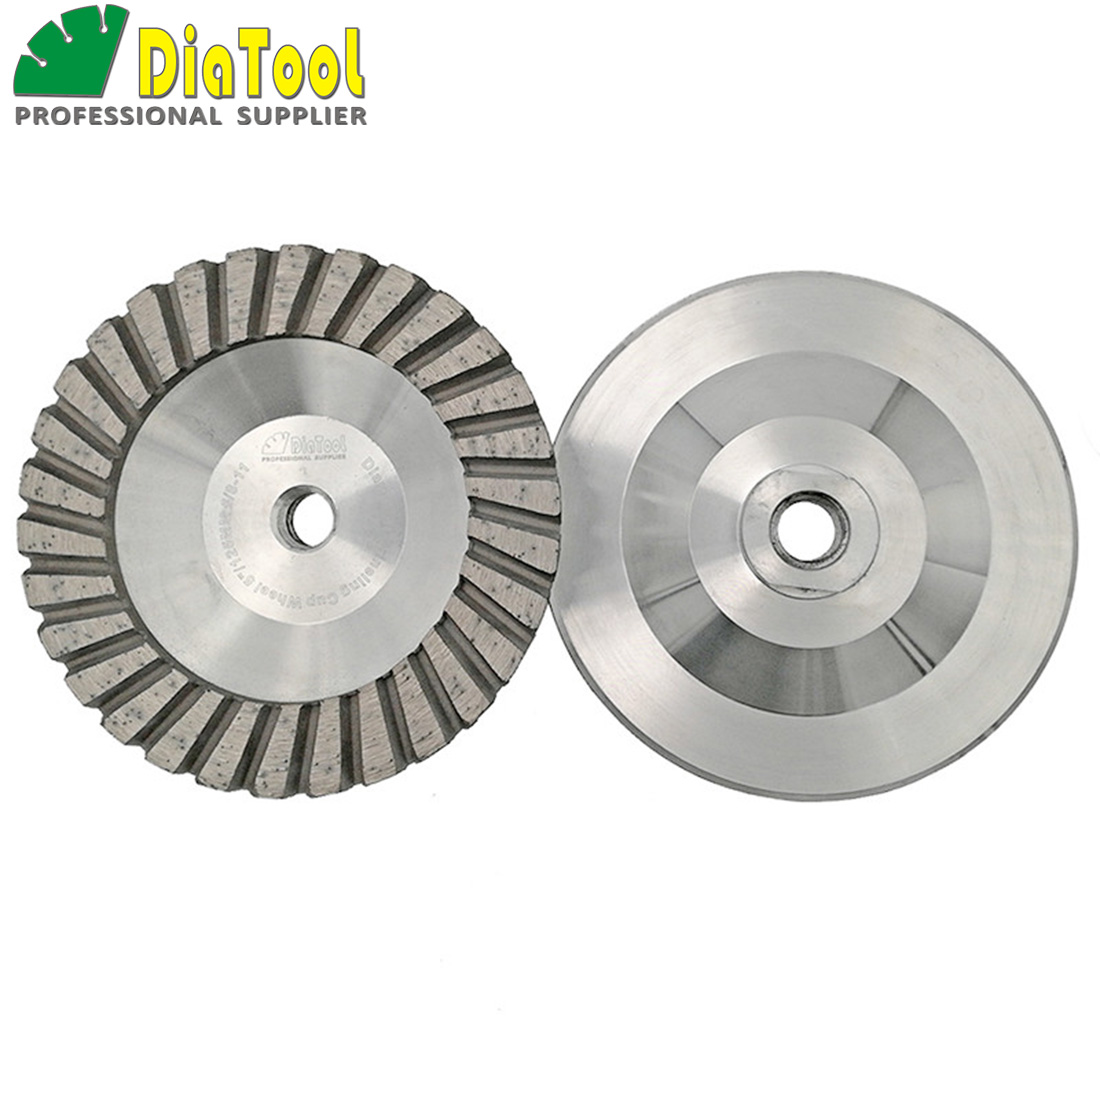 DIATOOL 2PK 5inch 125mm #30 Aluminum Based Diamond Grinding Cup Wheel 5/8-11 thread Grinding Discs Granite Concrete Diamond fine